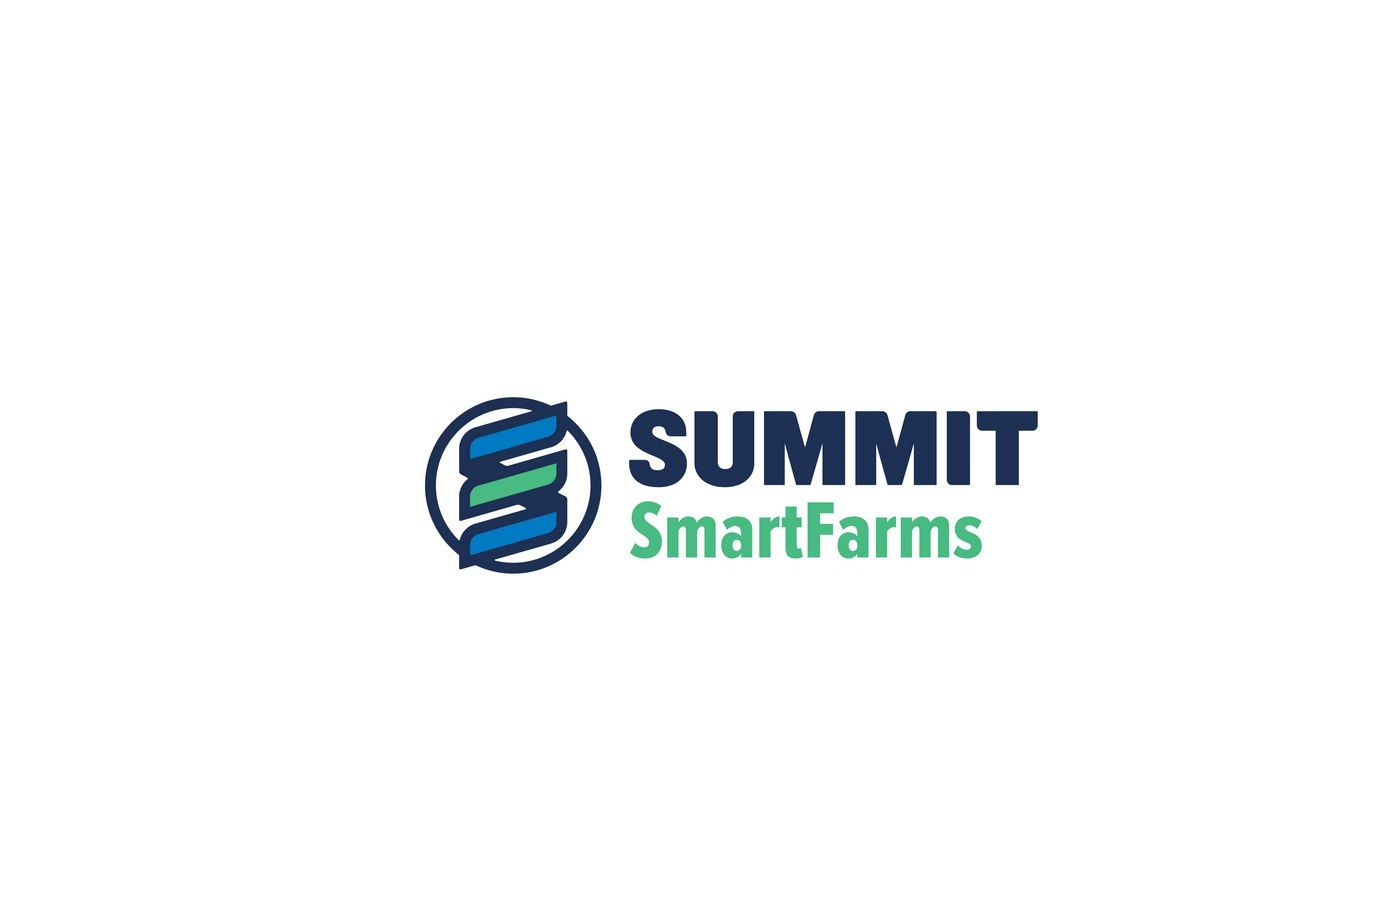 Summit_About Us_Summit SmartFarms-01